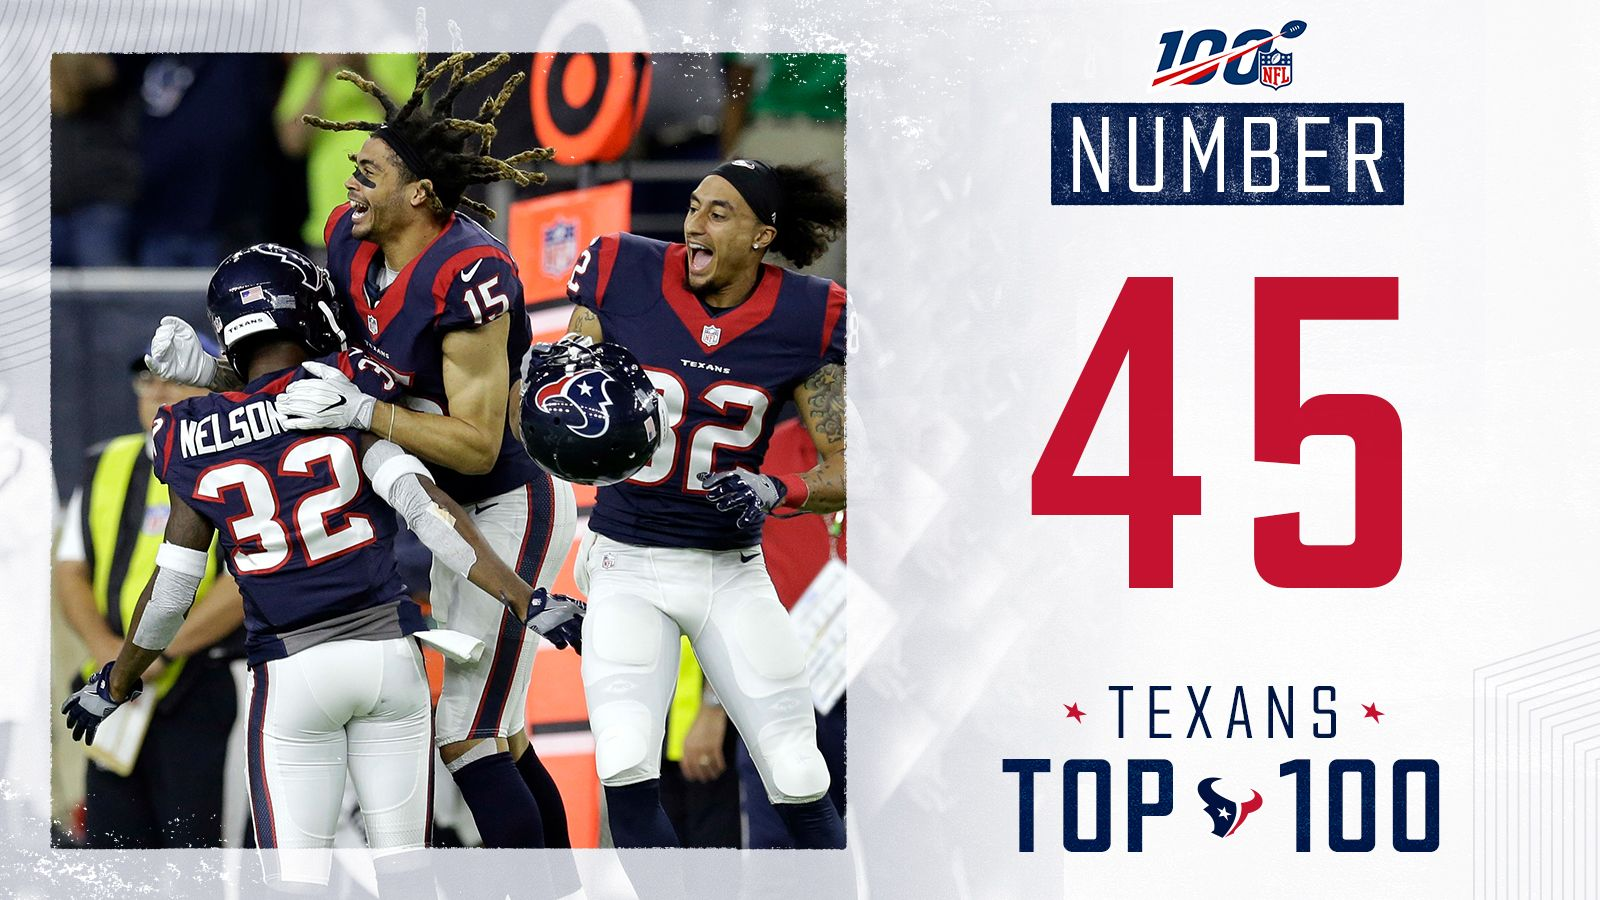 45_Texans beat Bengals on Christmas Eve 2016 - TWITTER